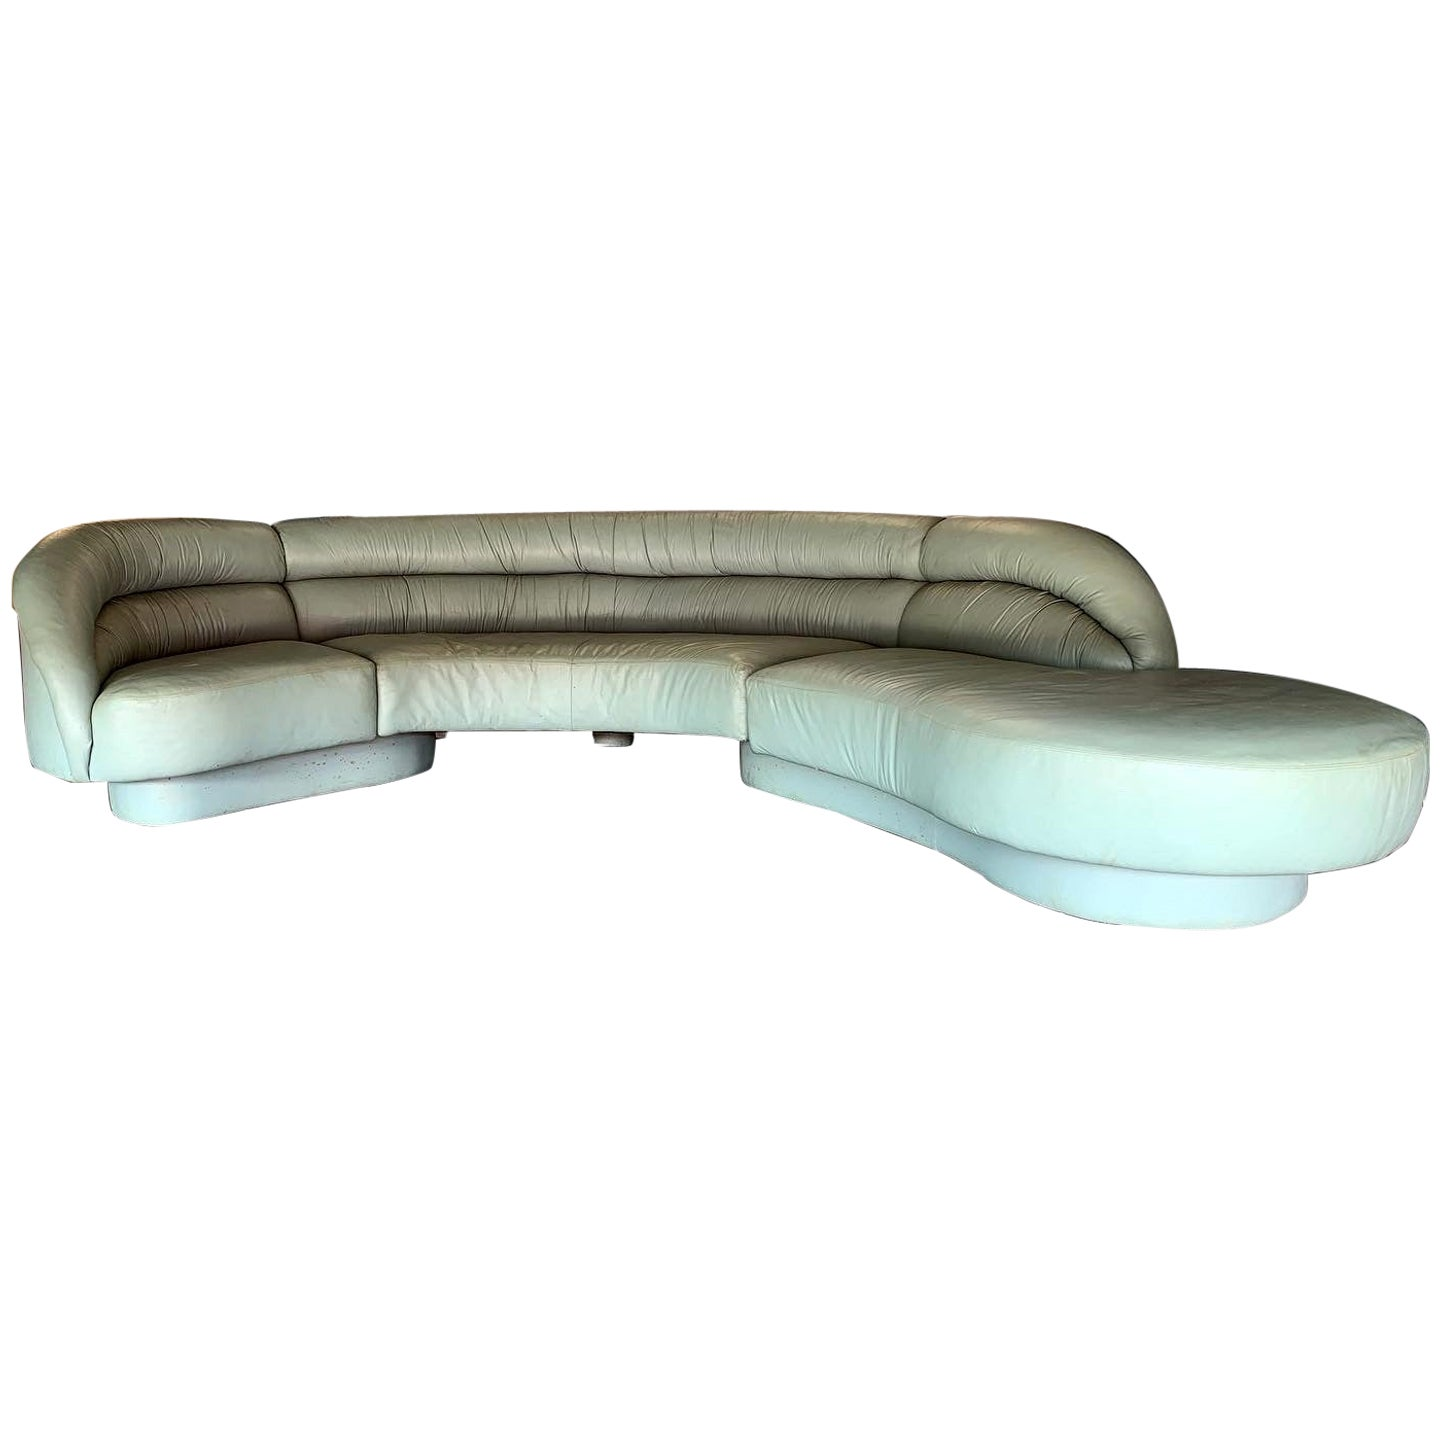 Vladimir Kagan for Directional 3-Piece Serpentine Sectional